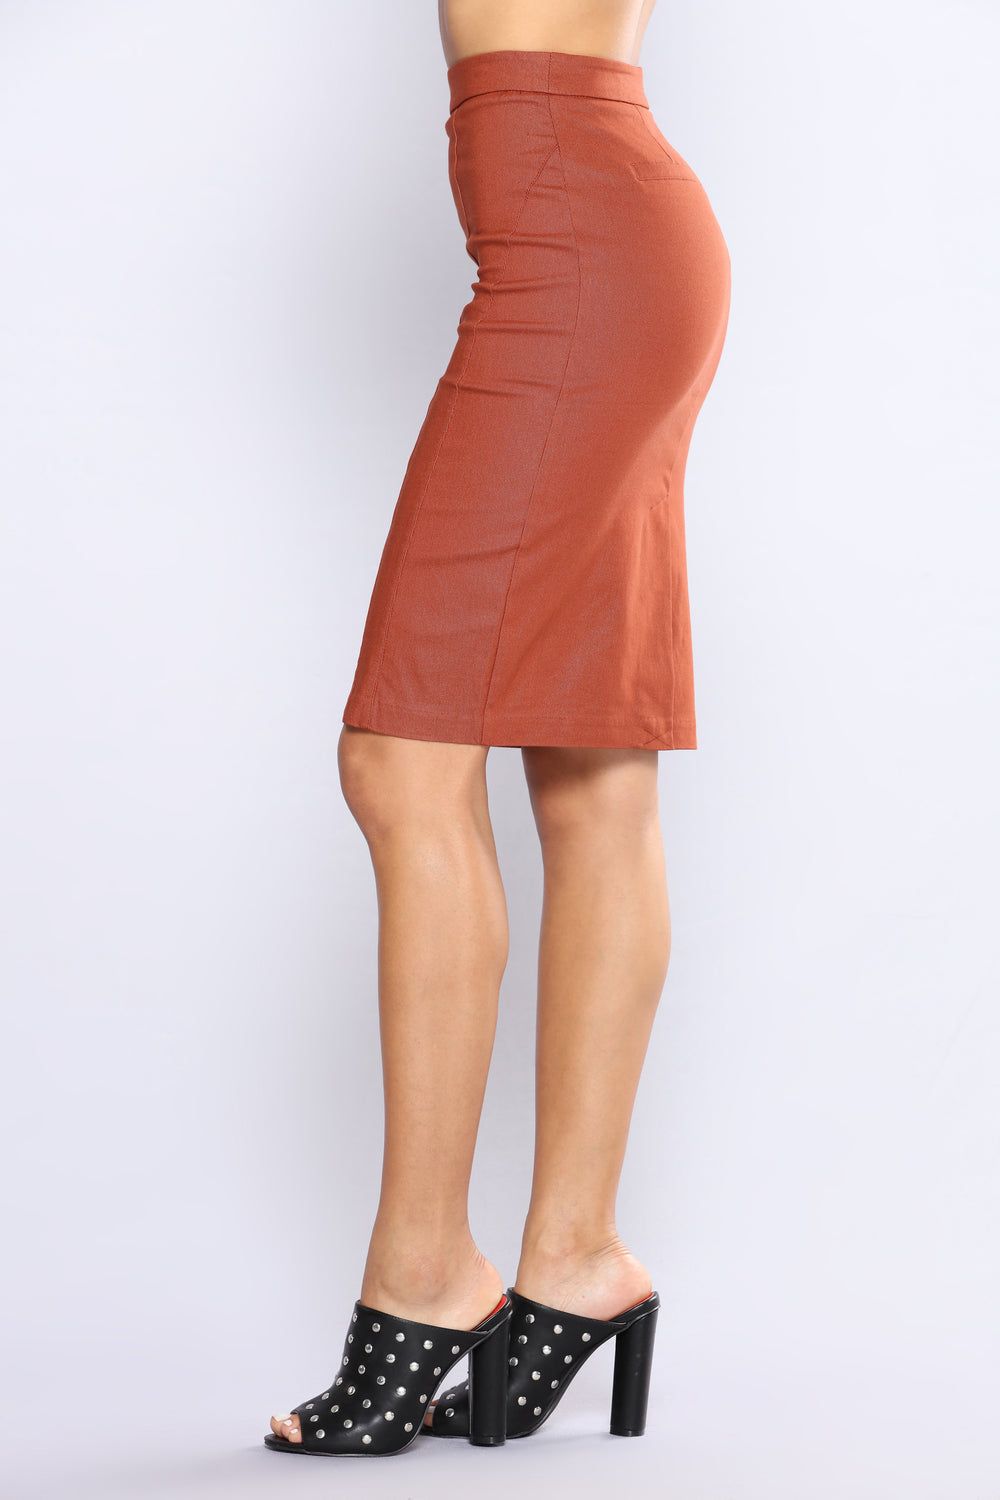 Fame Is Blinding Pencil Skirt - Rust